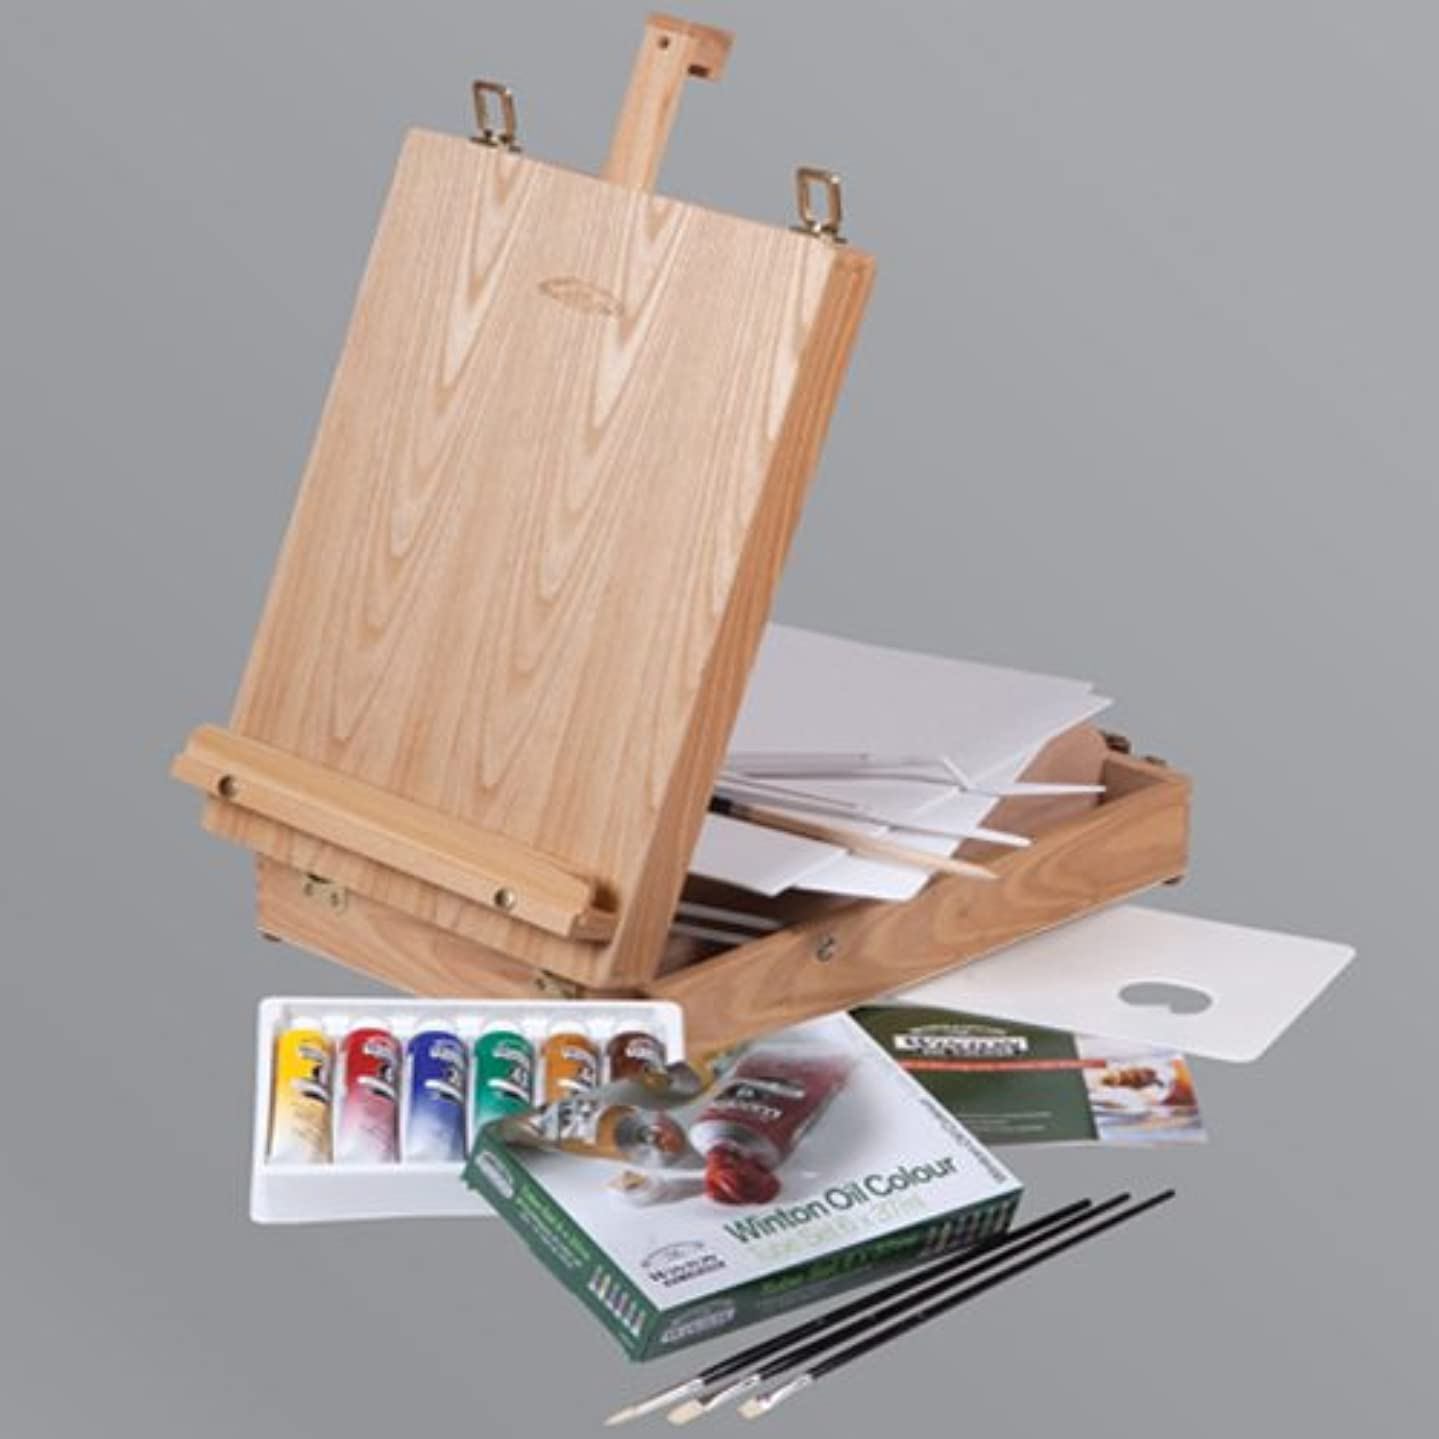 Winsor & Newton Winton Easel Set